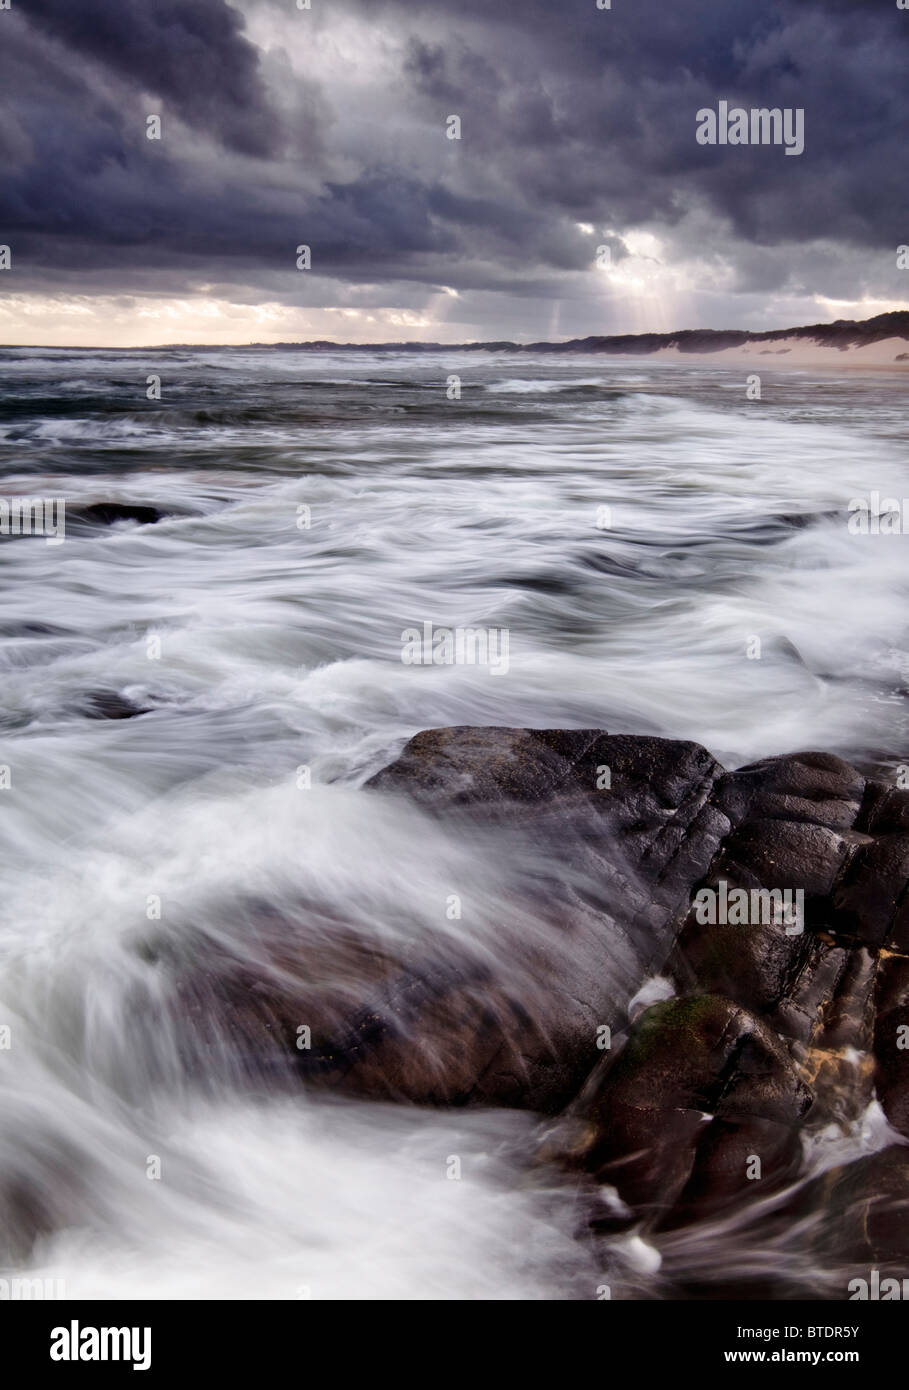 Moody seascape with rocks in the foreground and lighting over the sea - Stock Image